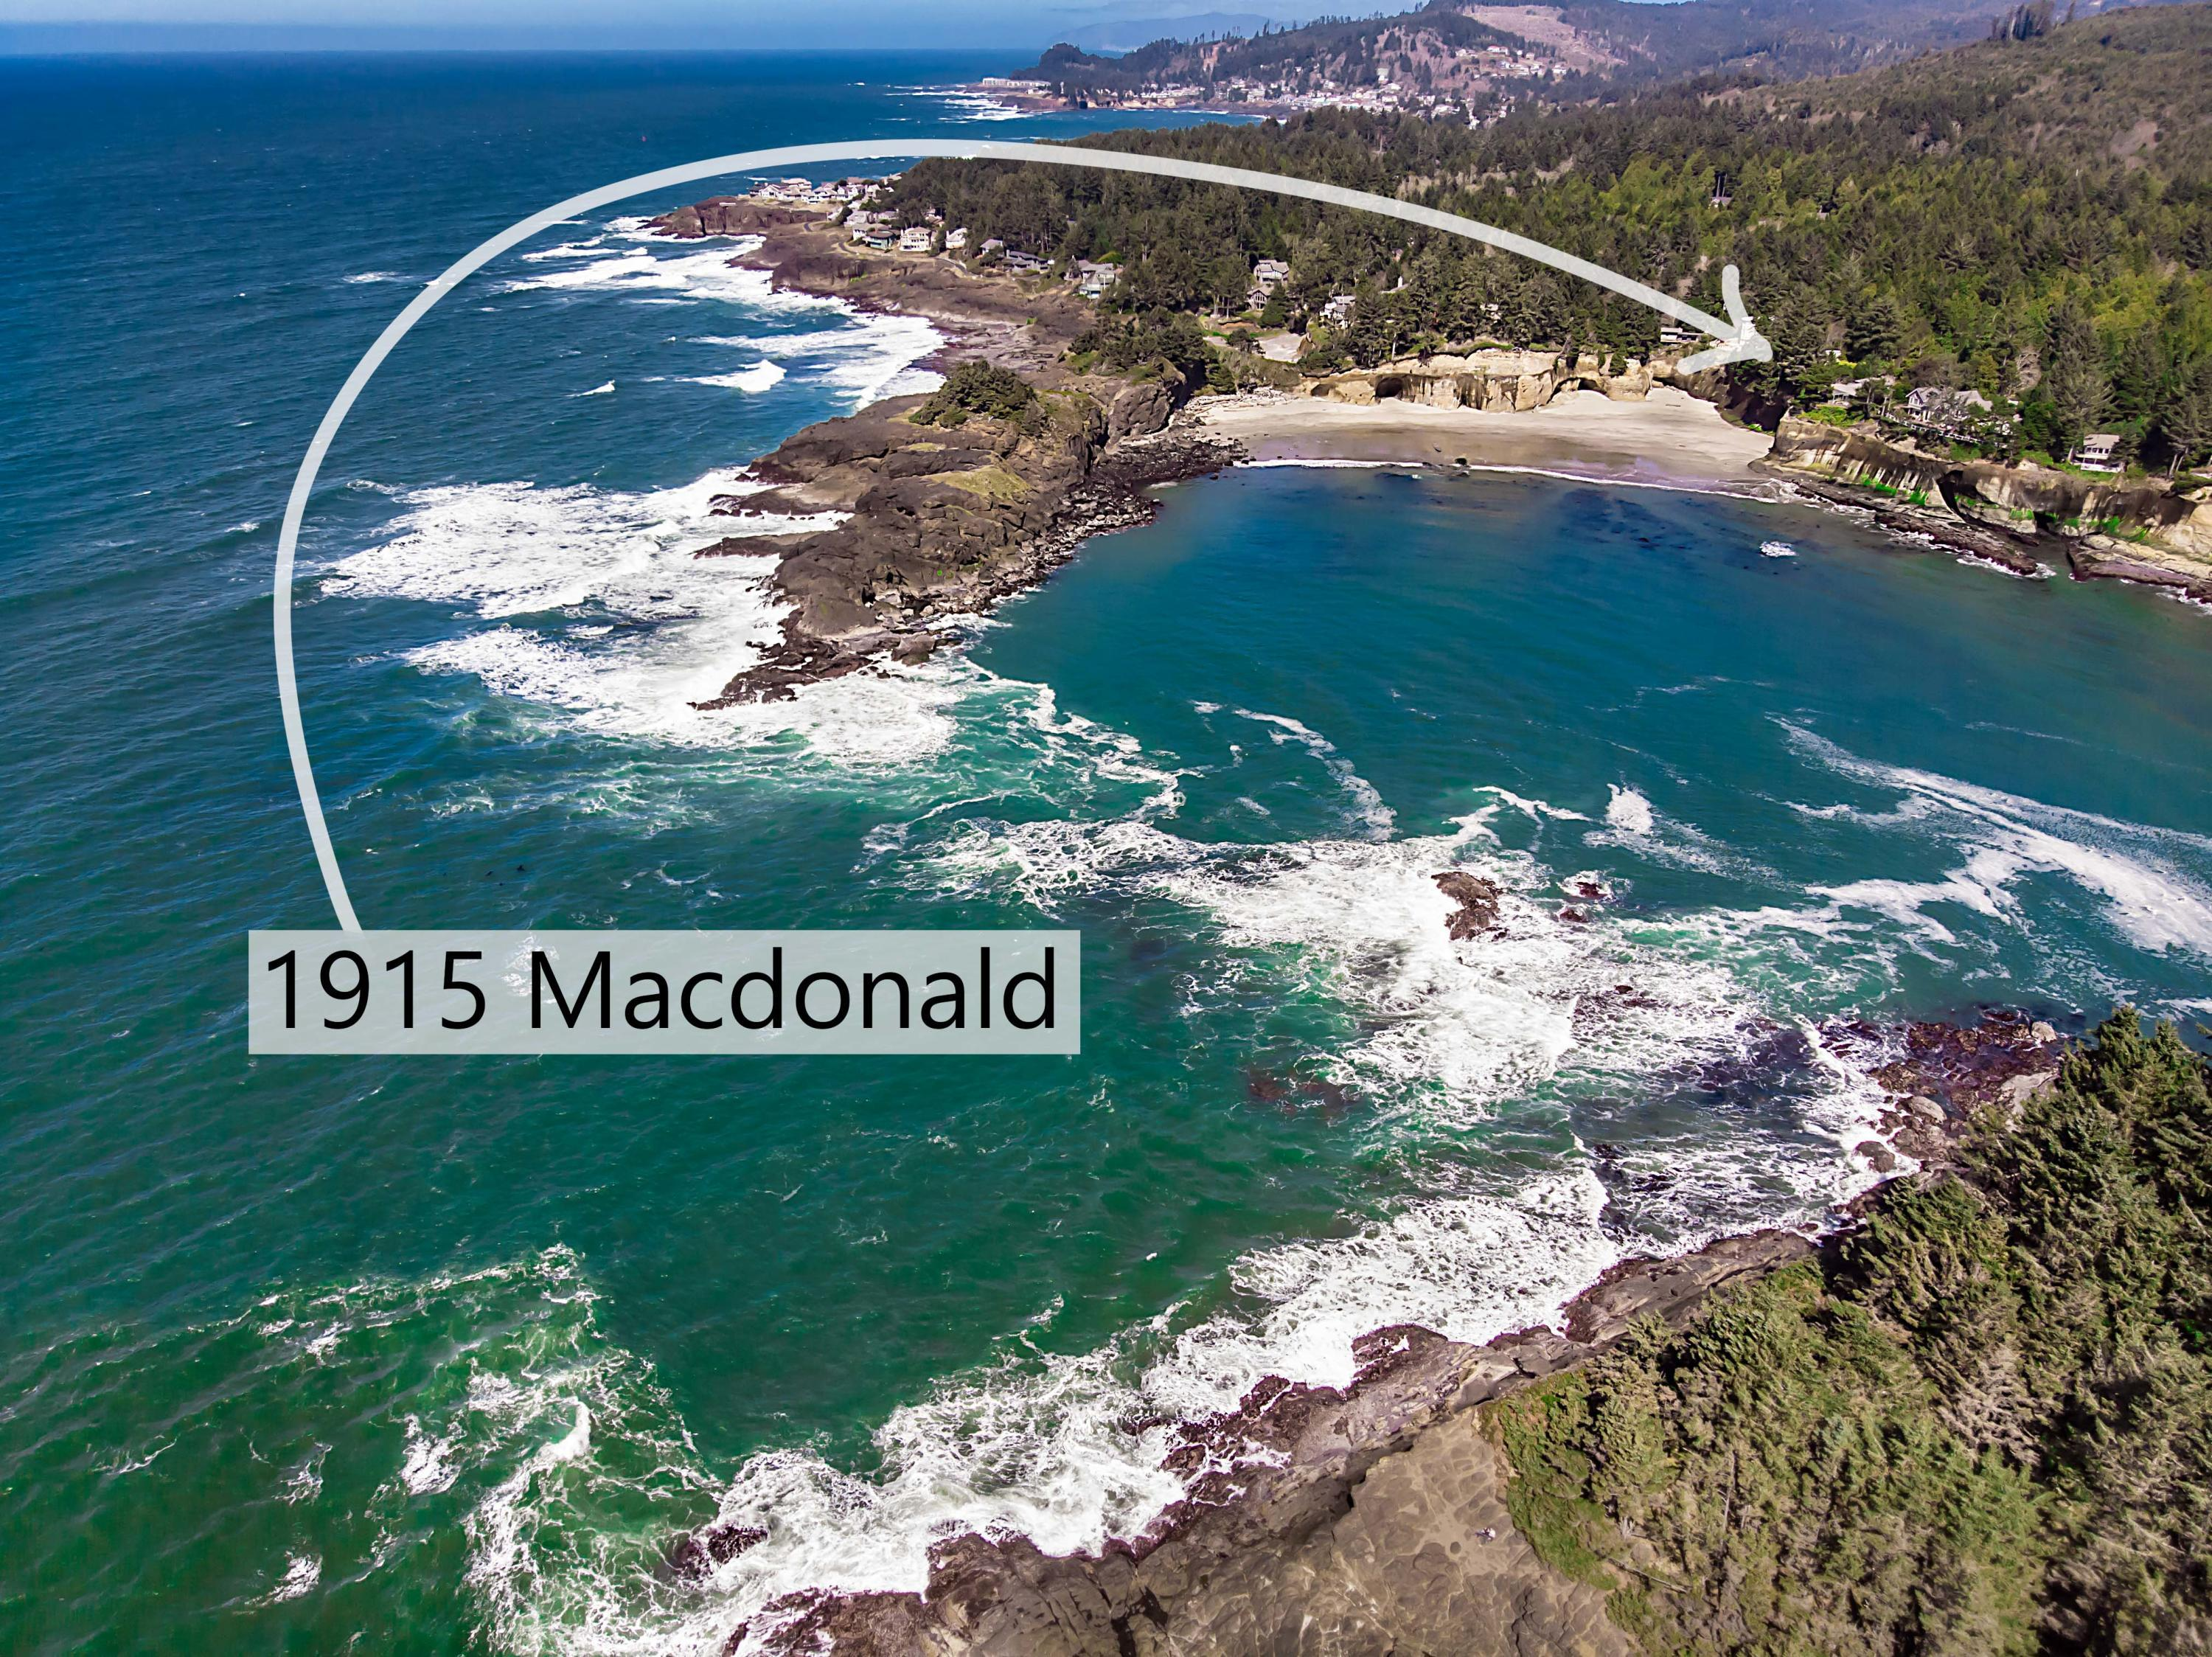 1915 SW Mcdonald Ave, Depoe Bay, OR 97341 - 1915 SW McDonald